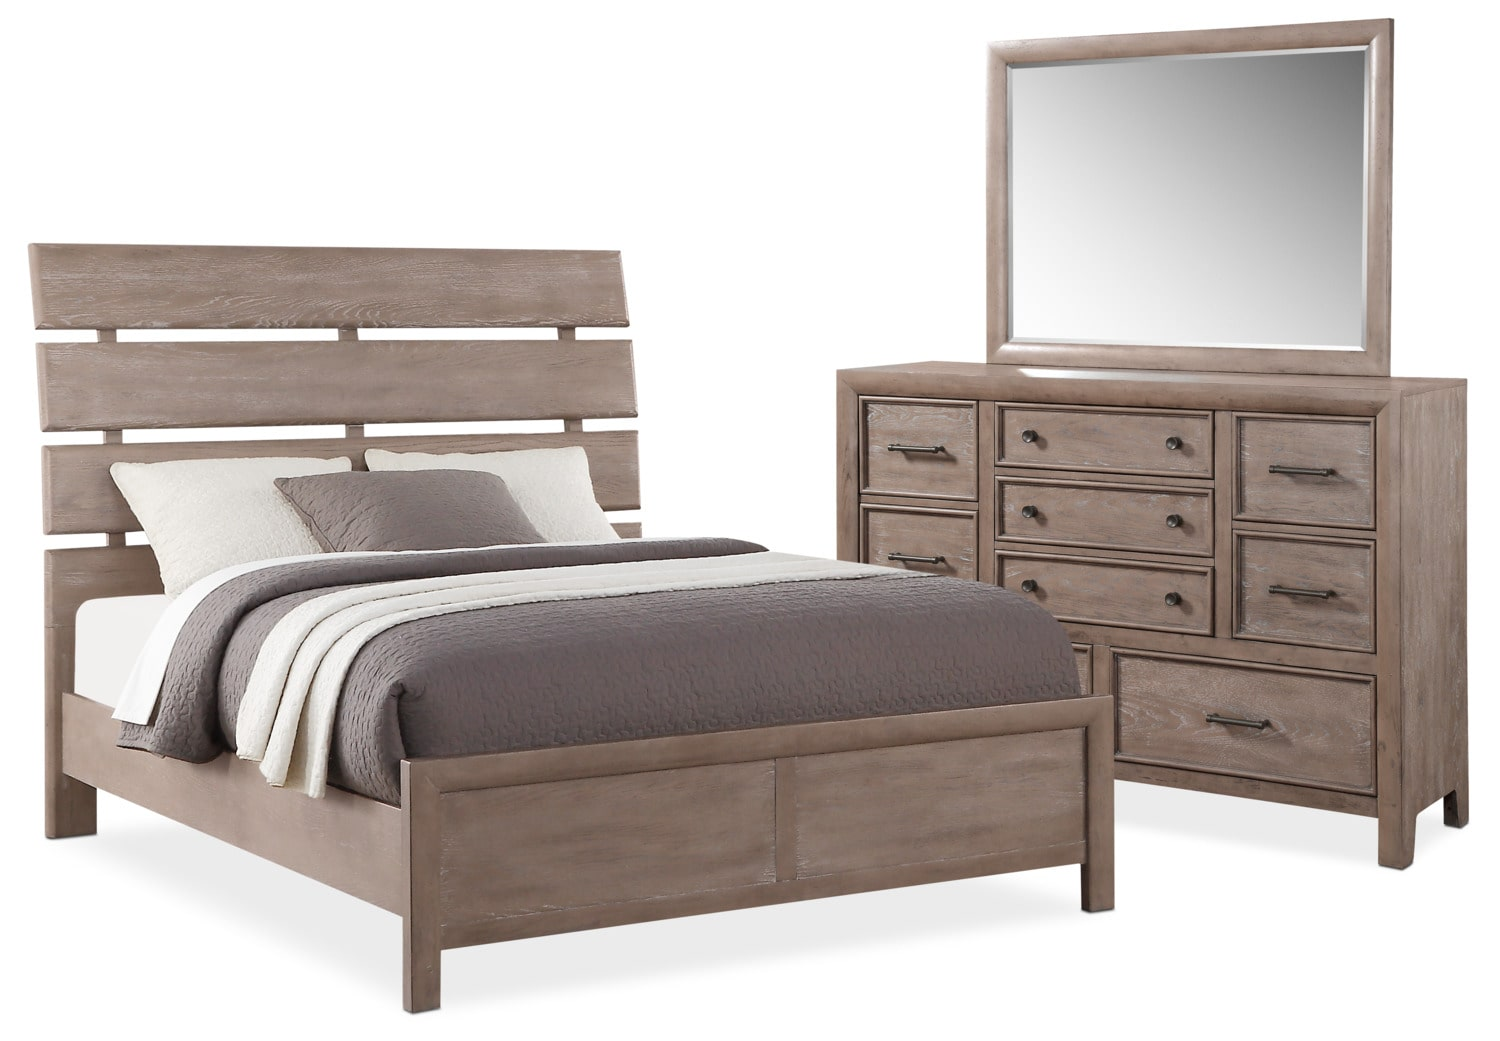 Bedroom Furniture   Hampton 5 Piece Queen Bedroom Set   Gray